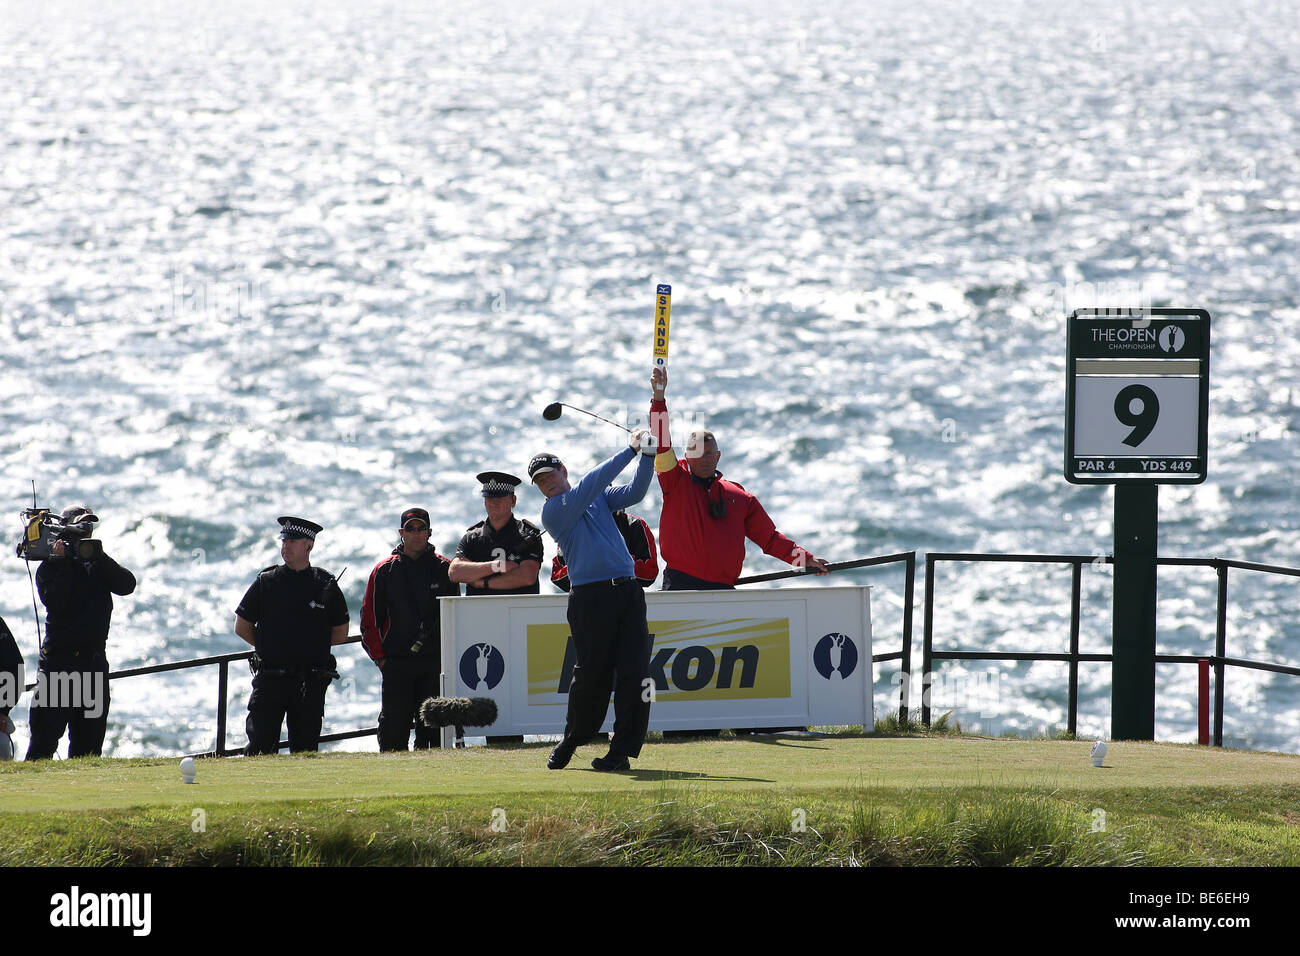 TOM WATSON DRIVES THE 9TH THE OPEN TURNBERRY 2009 TURNBERRY AYRSHIRE SCOTLAND 19 July 2009 - Stock Image